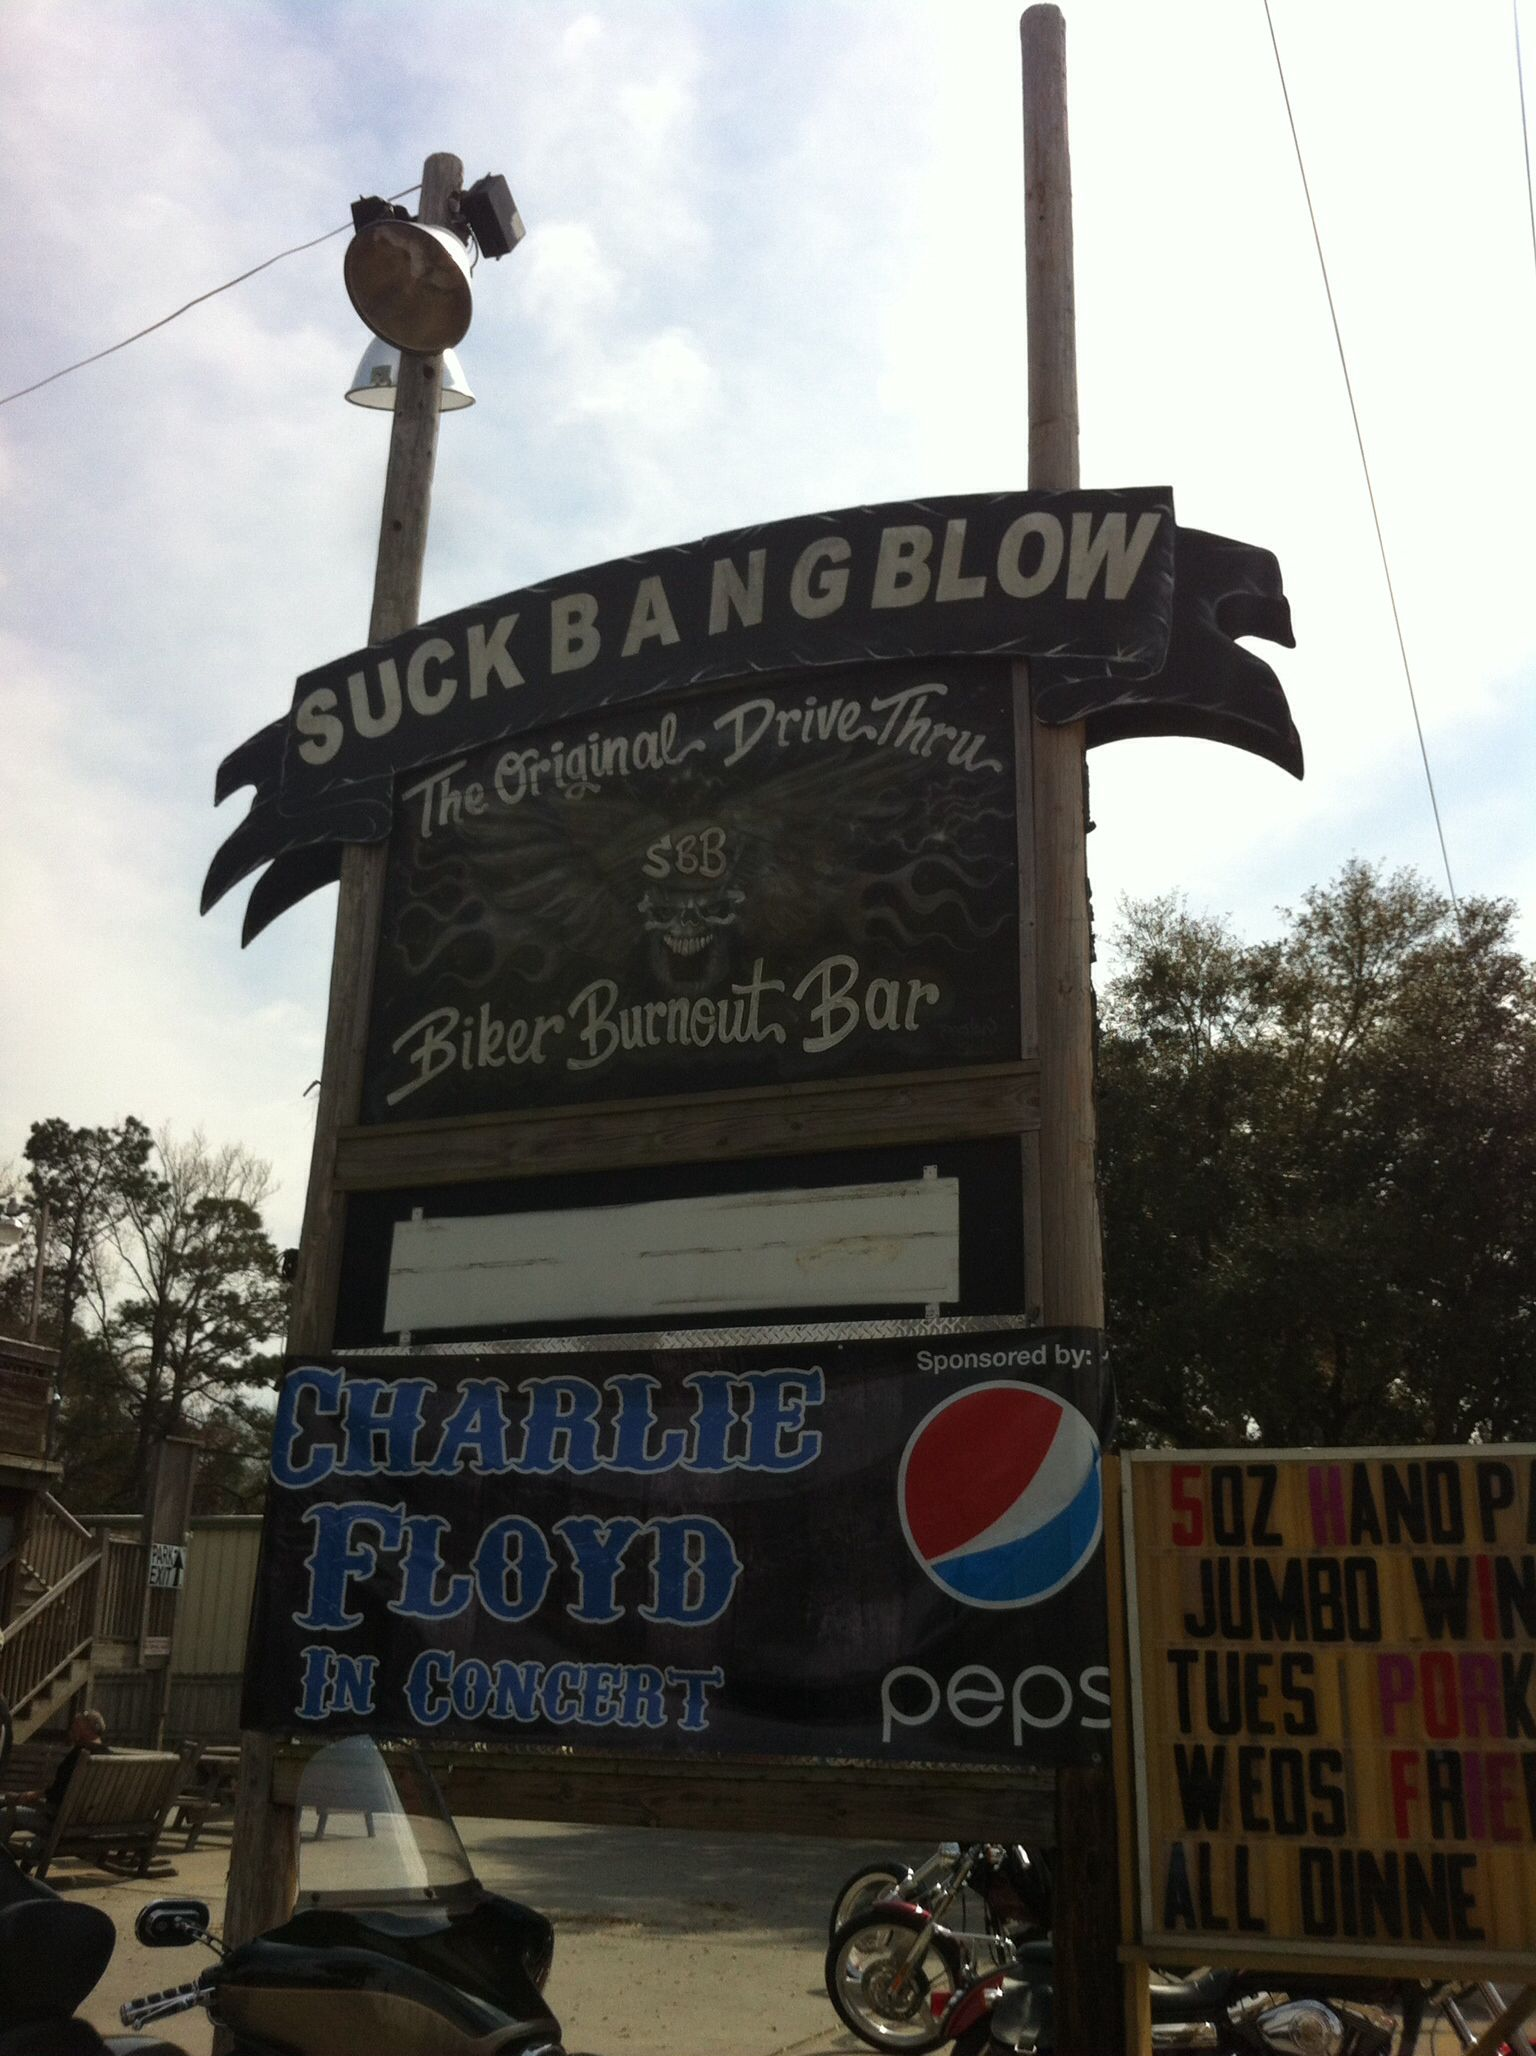 Suck bang blow bar in myrtle beach opinion you are